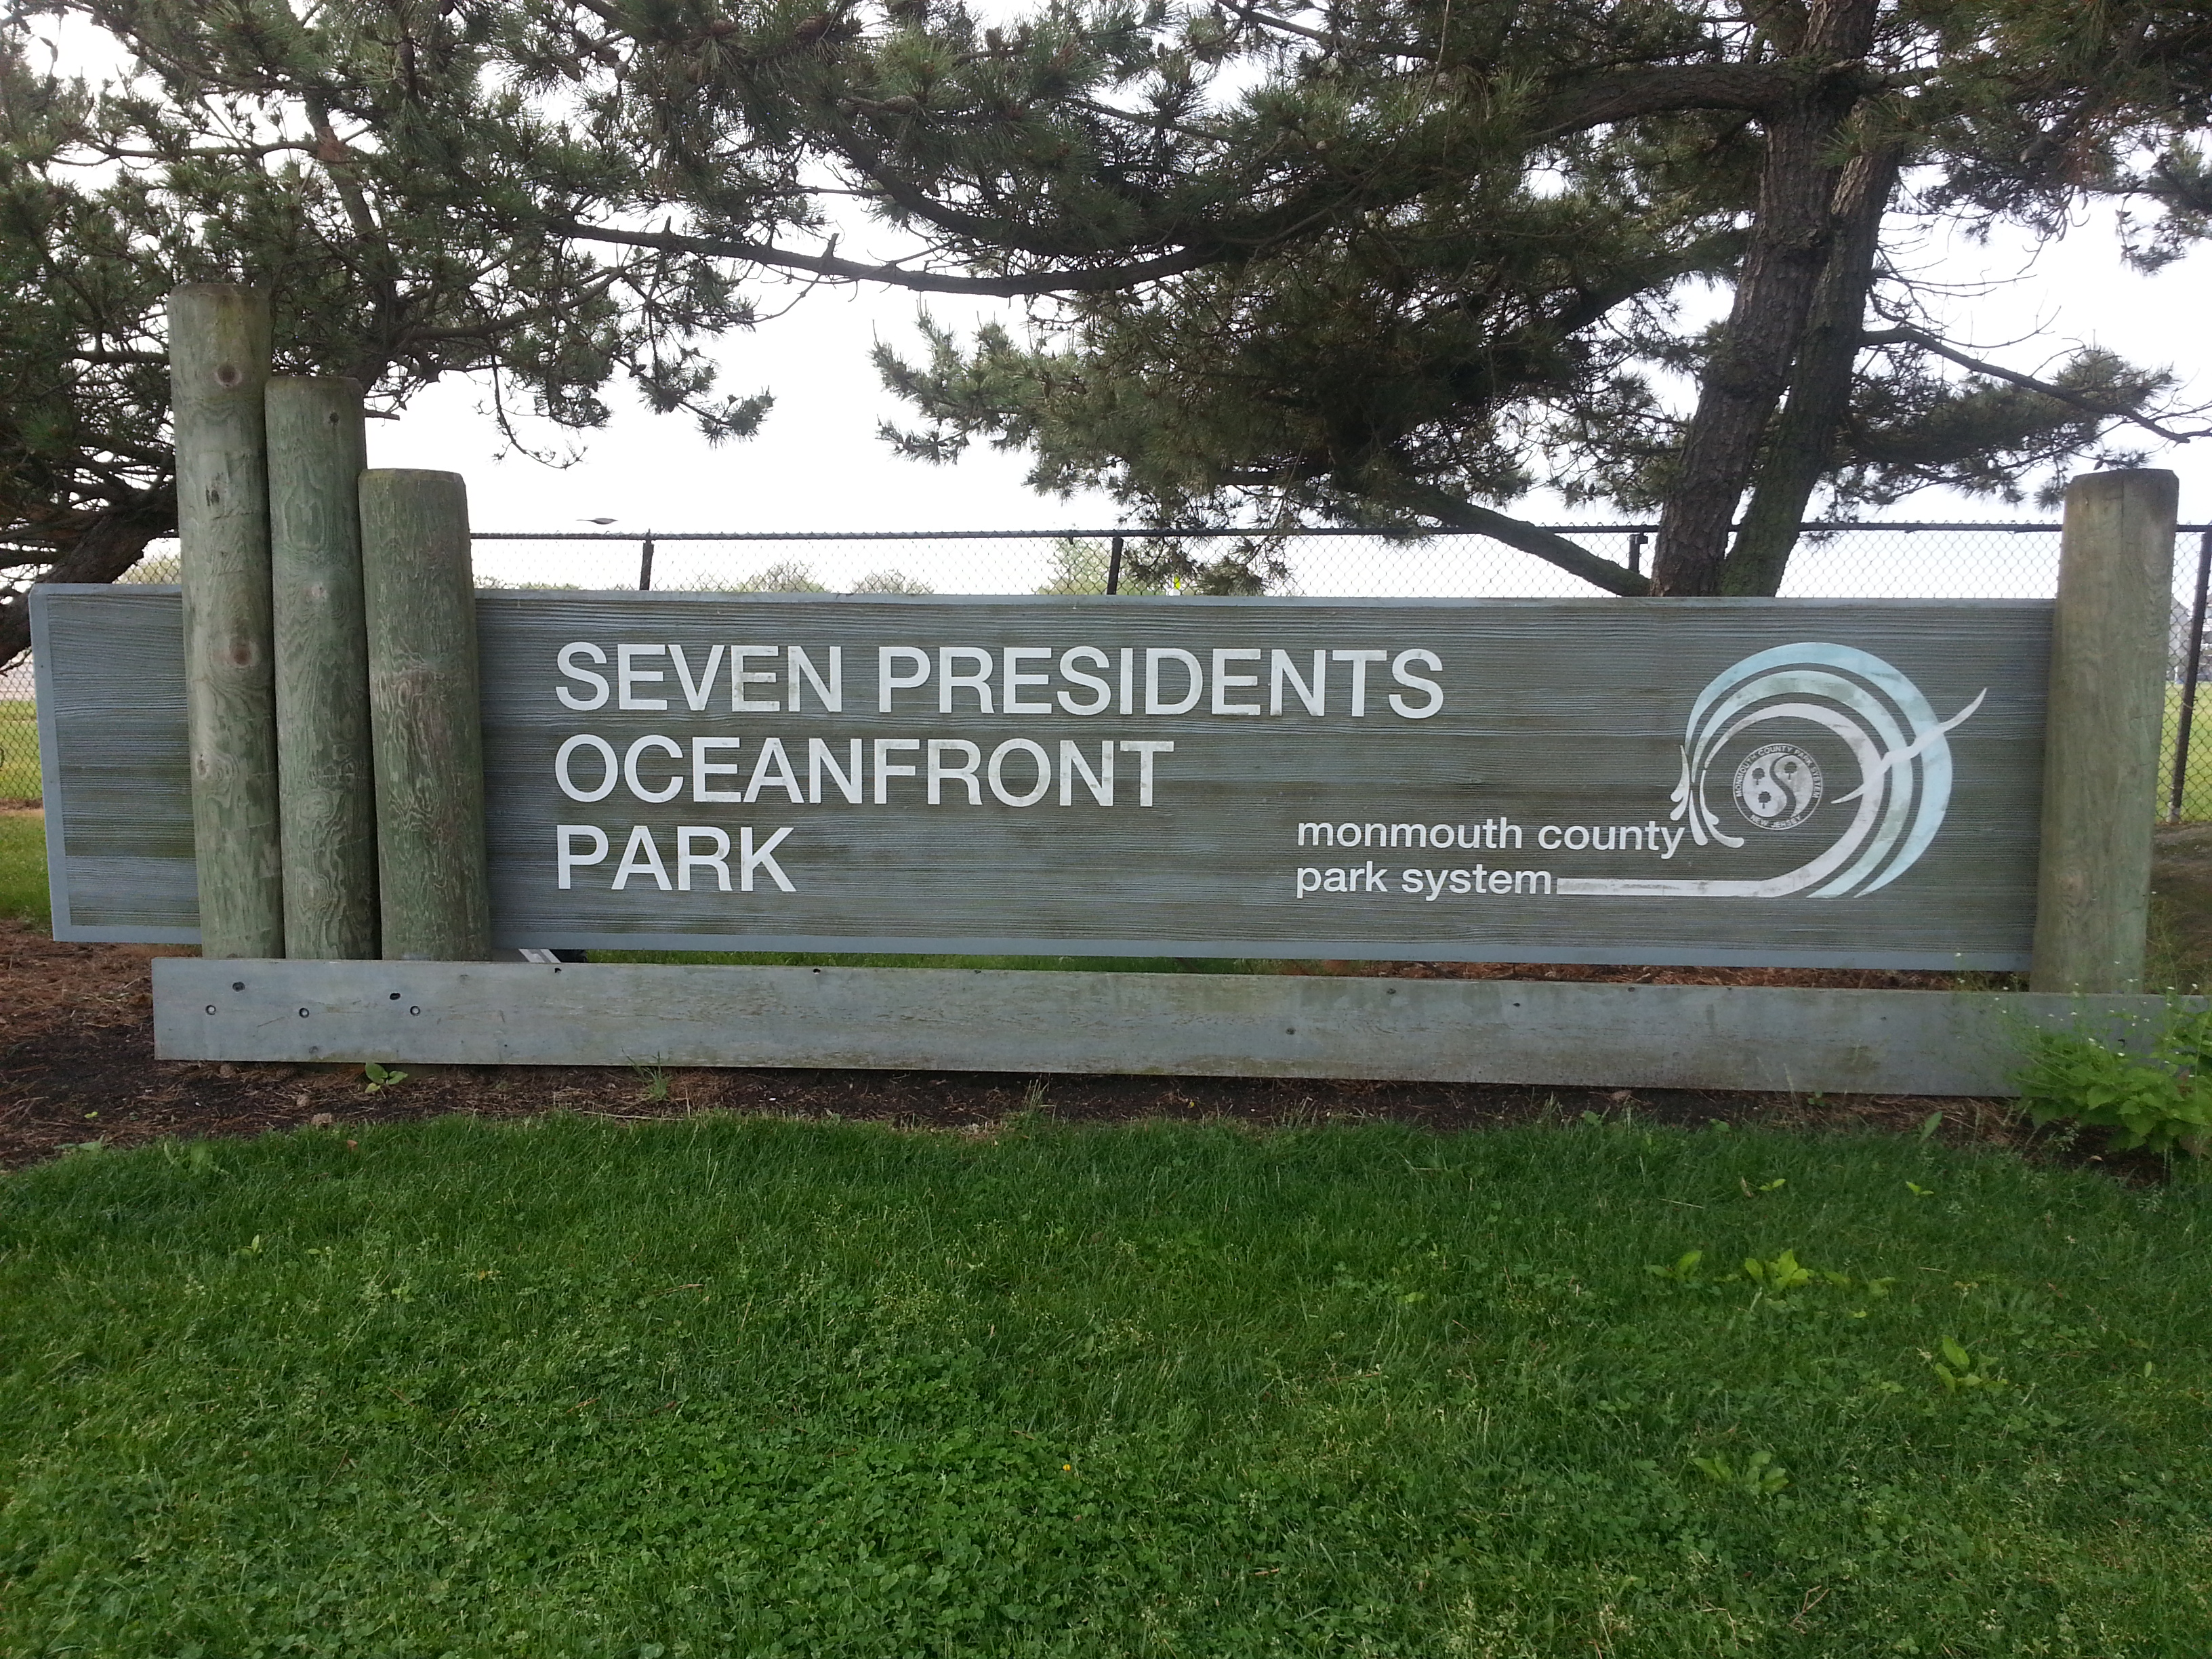 About 1000' from Ocean Pointe is the entrance to 7 Presidents Oceanfront Park.